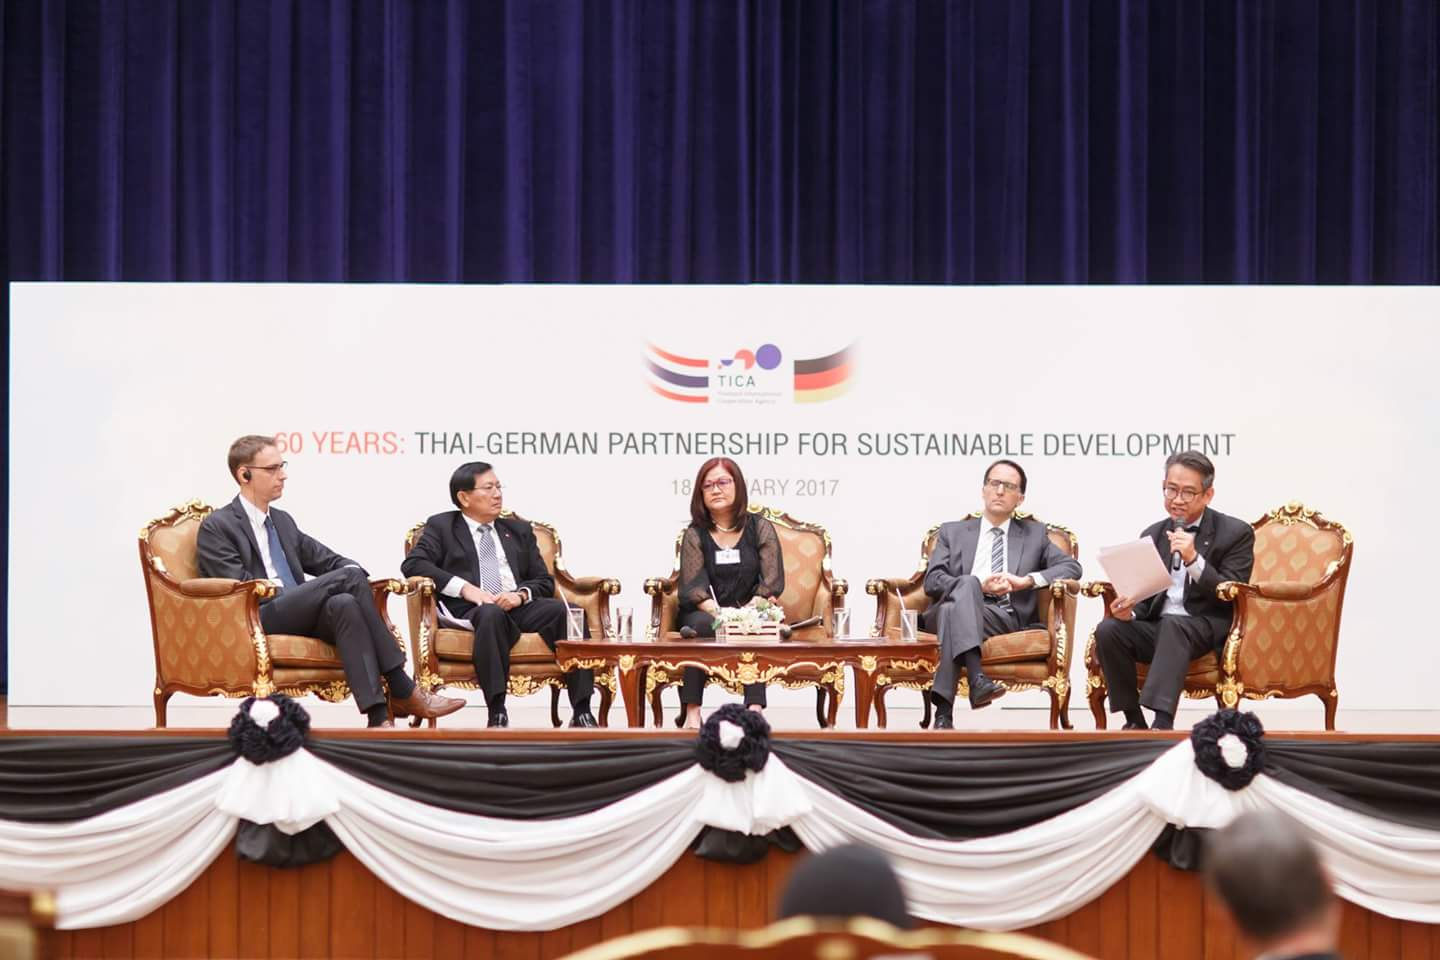 Panel discussion 'Stories from the Past for the Future towards SDGs'